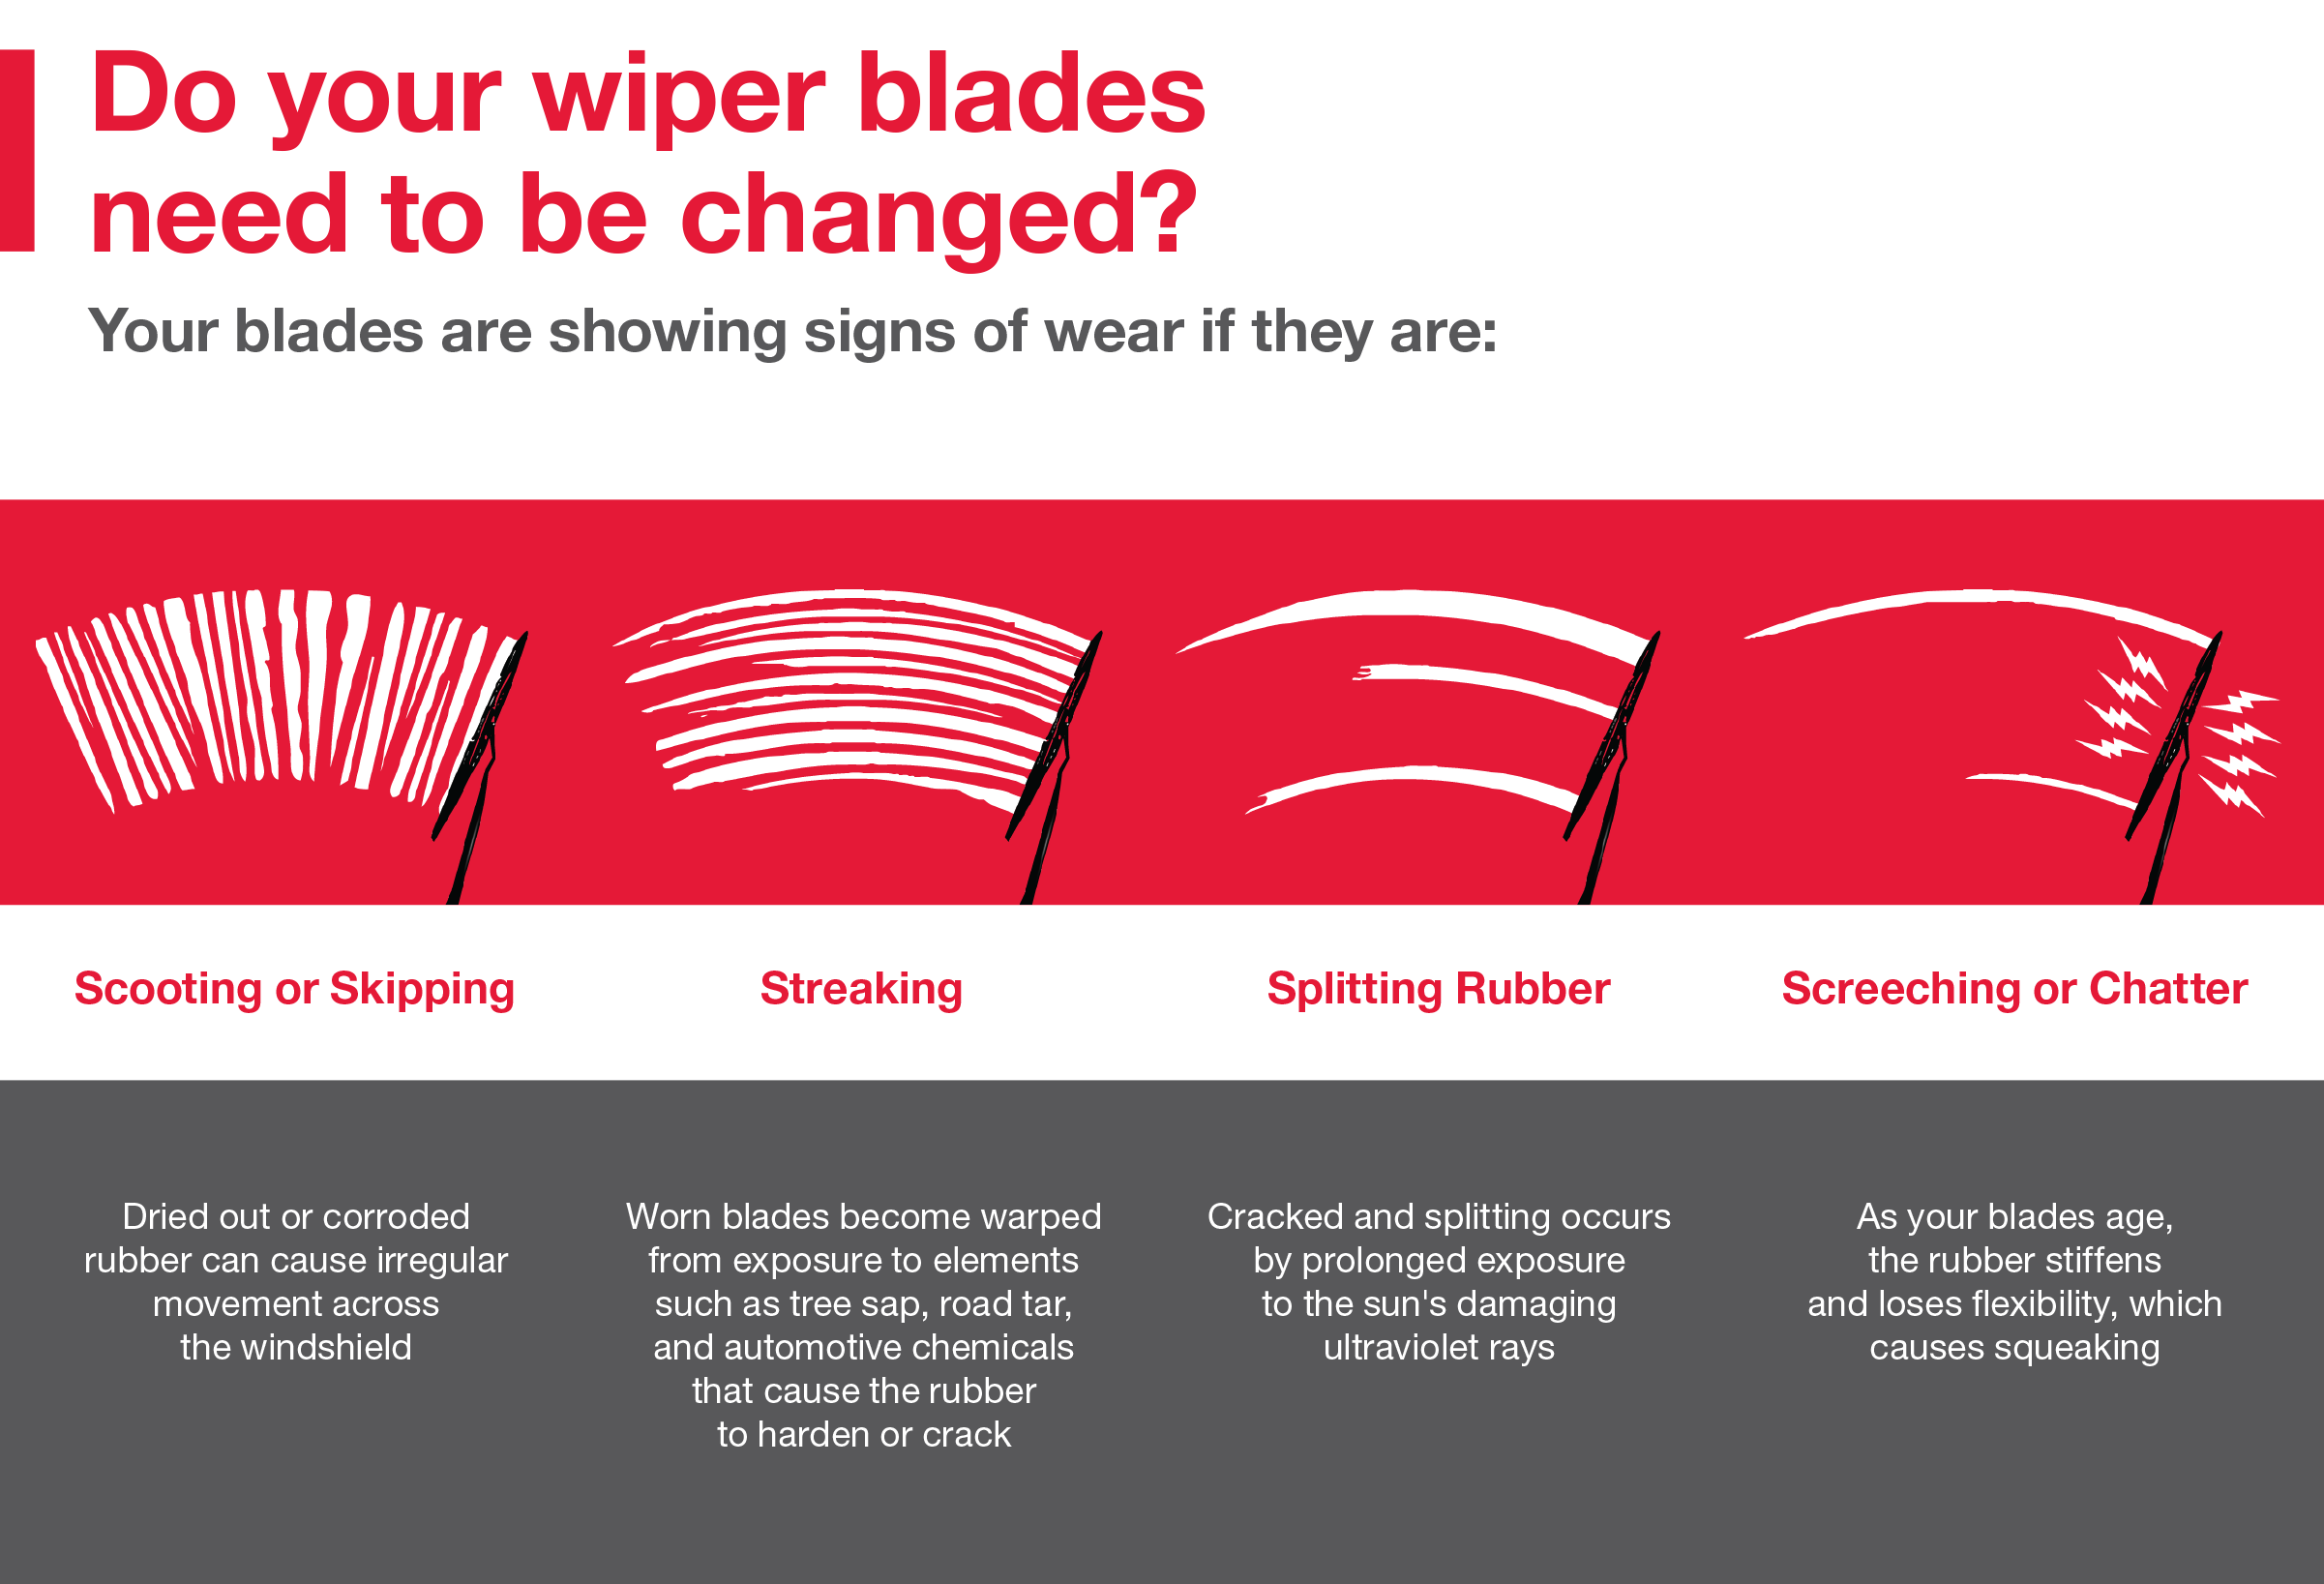 Do your wiper blades need to be changed? Call your local dealer for more info: (706) 369-5106